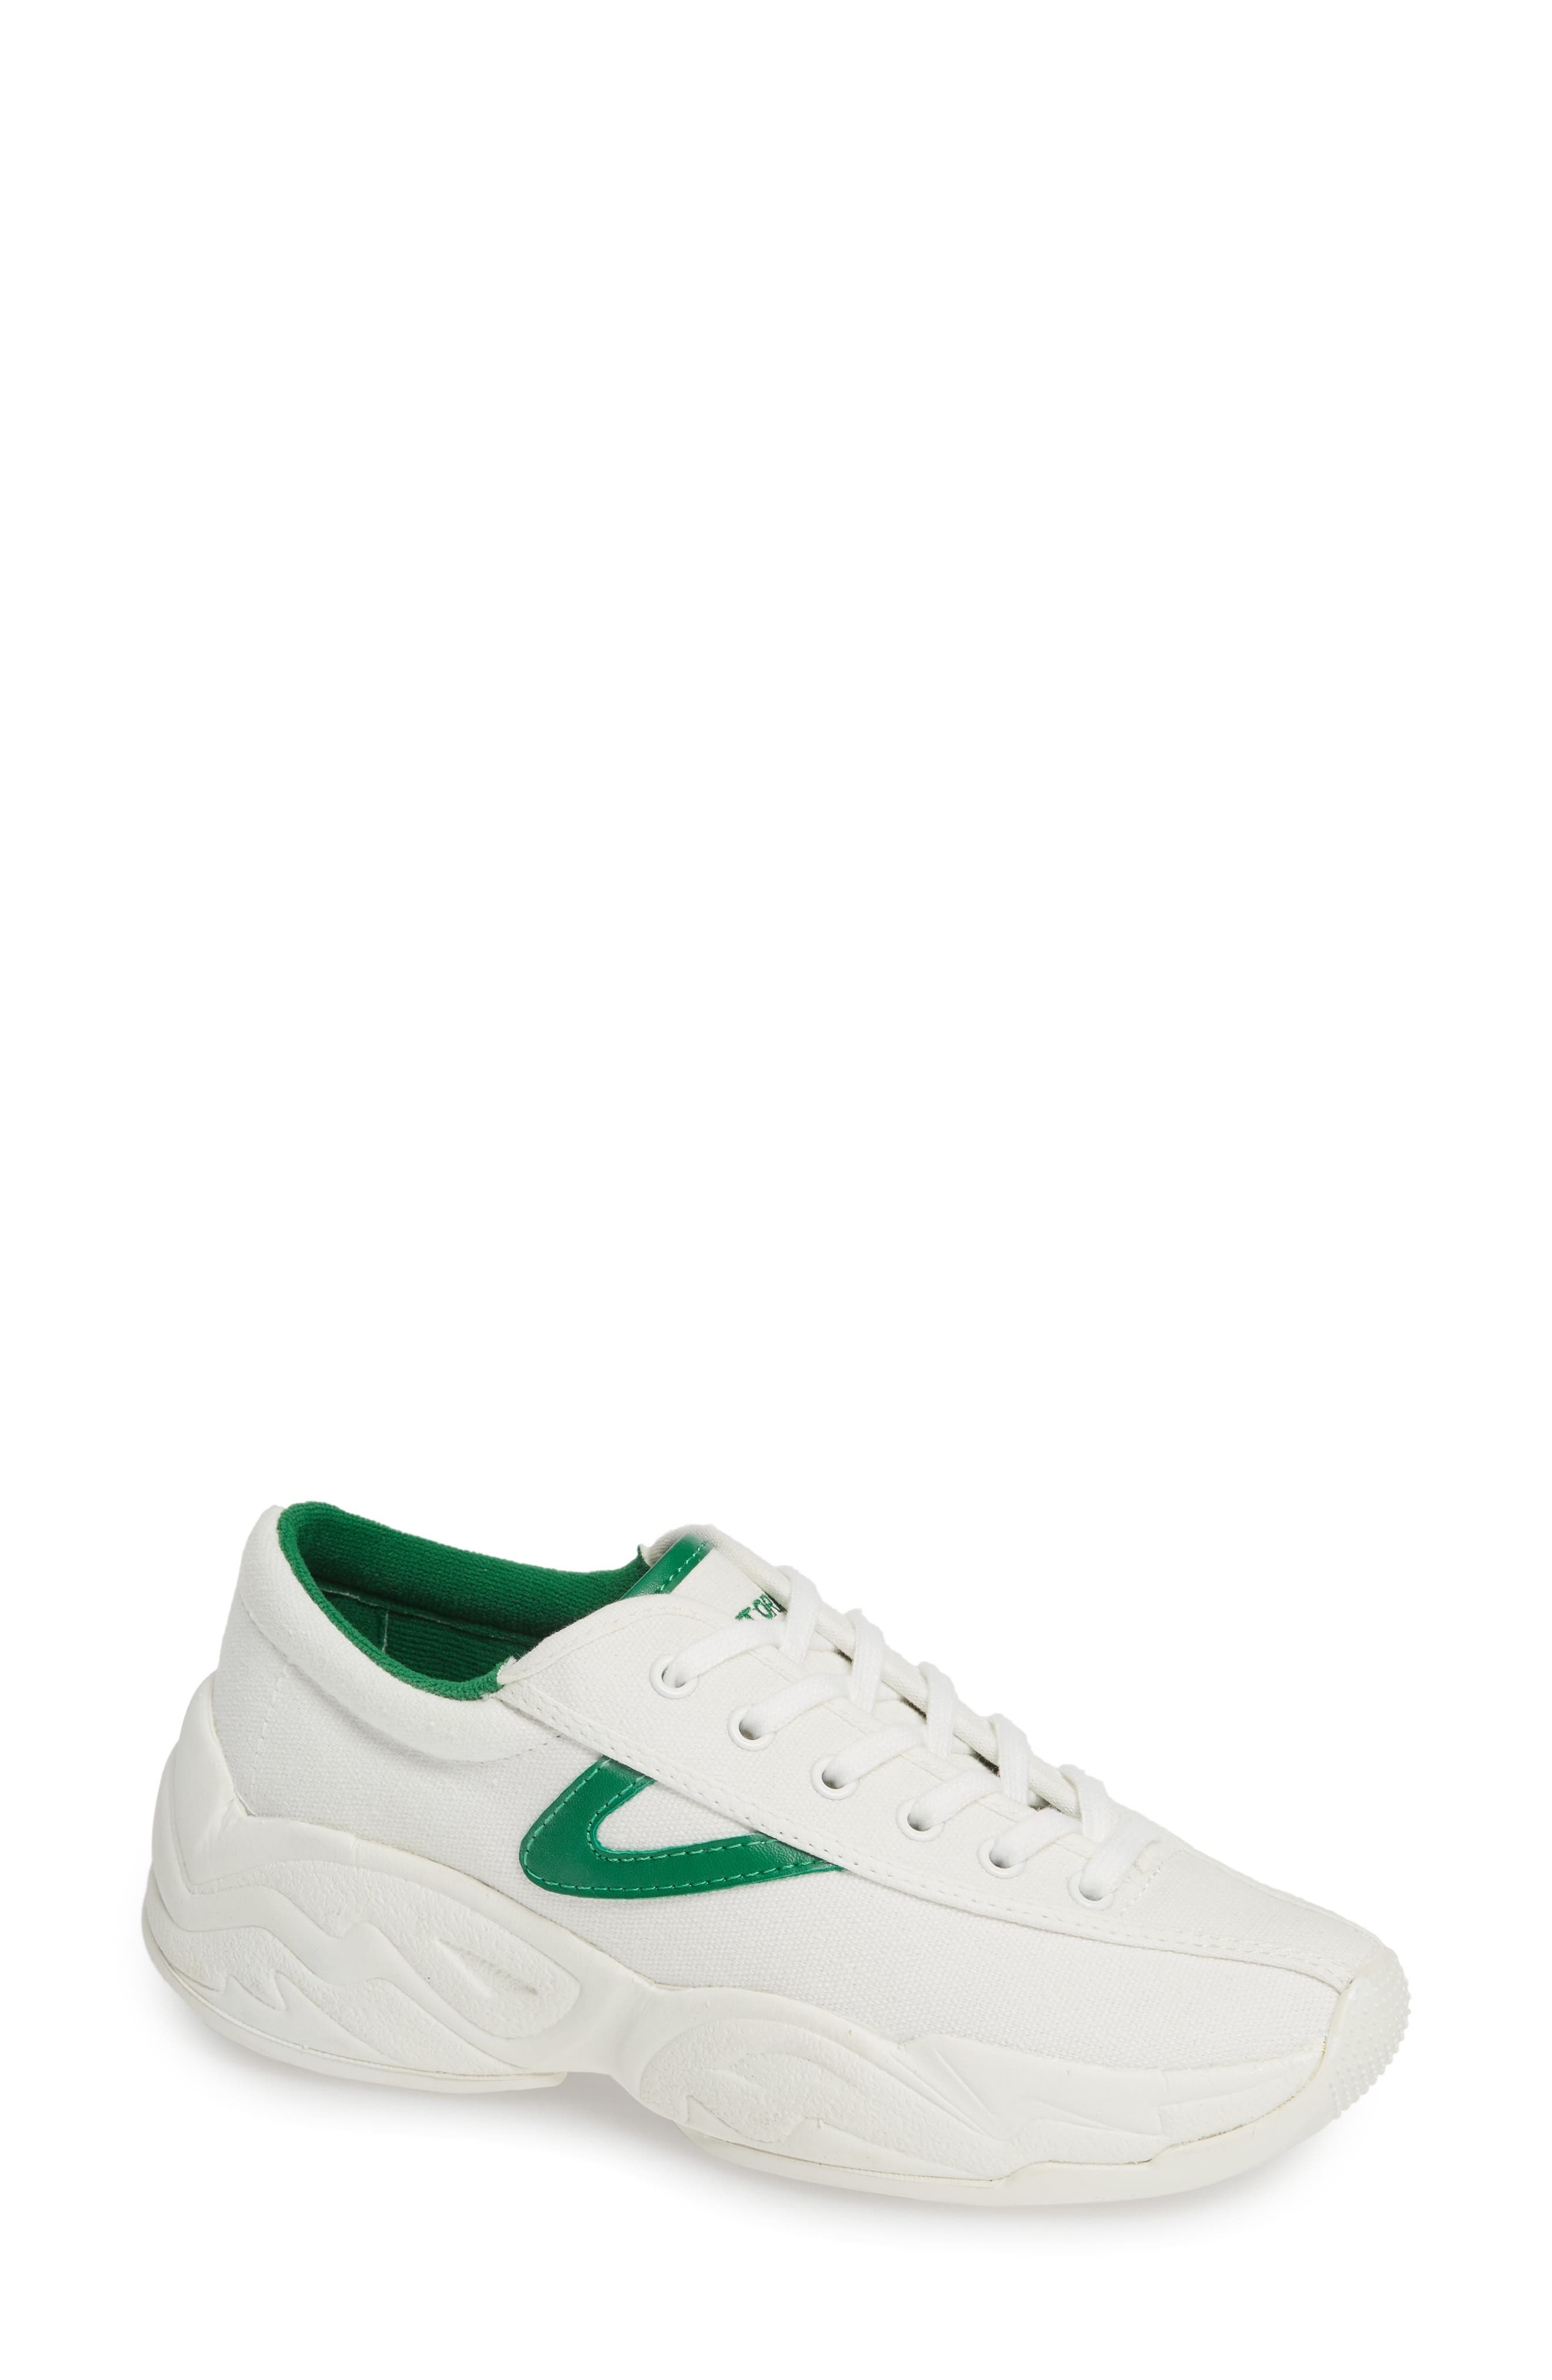 Nylite Fly Chunky Sneakers in Vintage White/Green